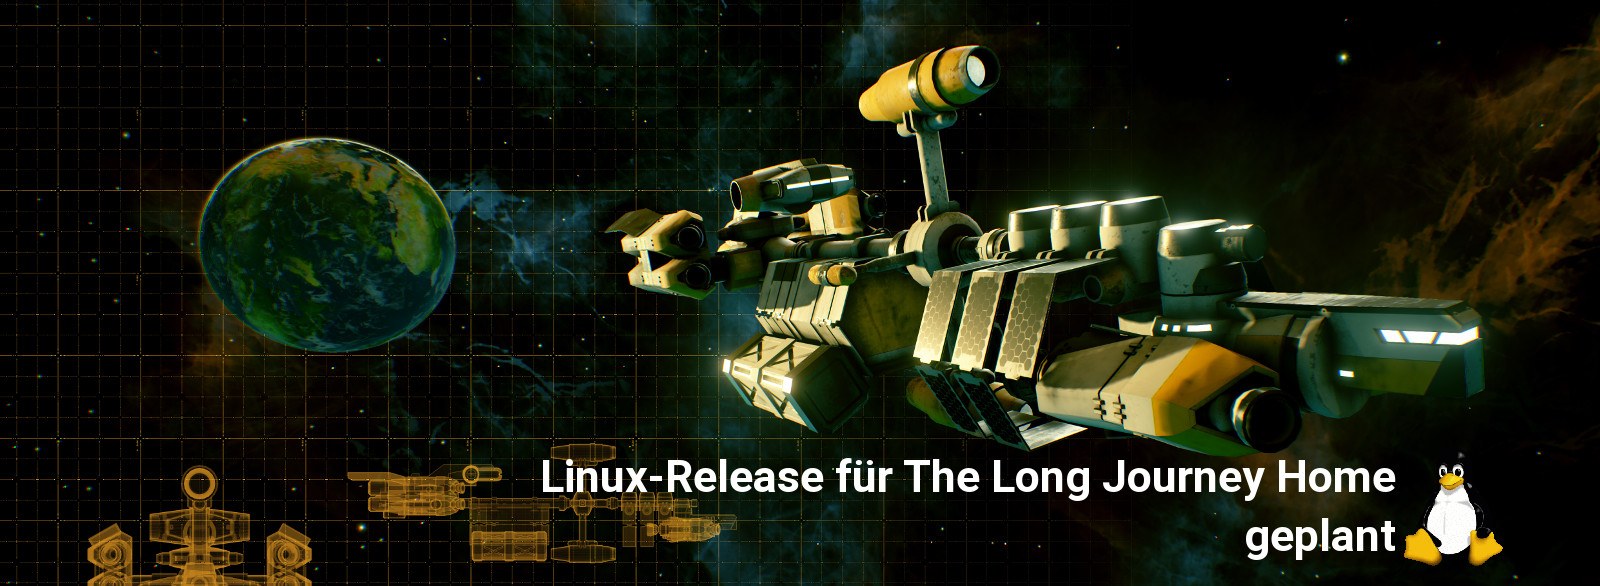 https://www.holarse-linuxgaming.de/sites/default/files/2017-05-31-1/tljh_teaser.jpg